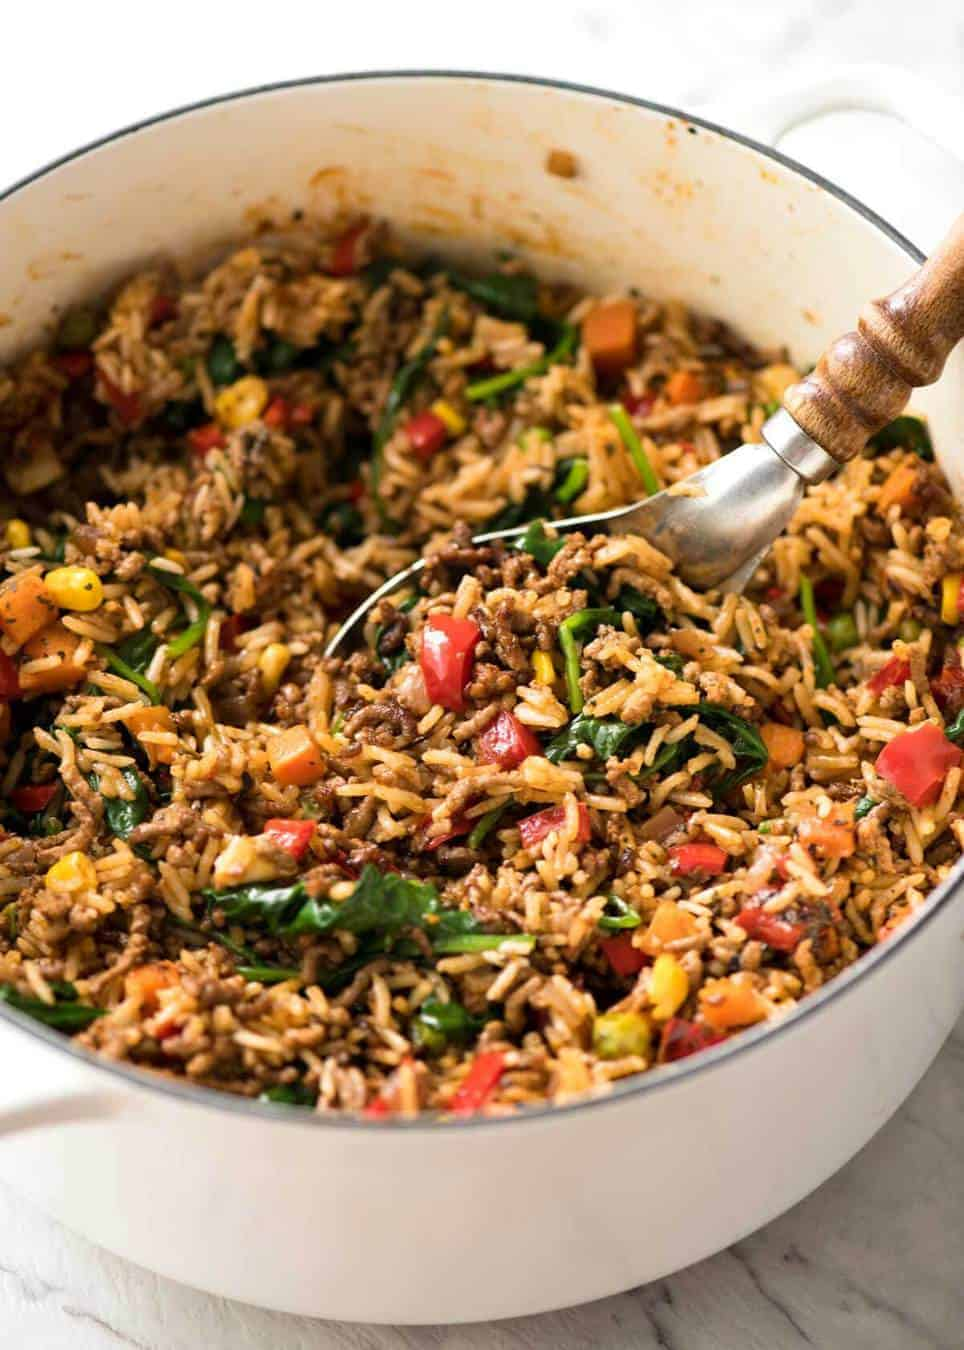 Beef and Rice with Veggies | RecipeTin Eats